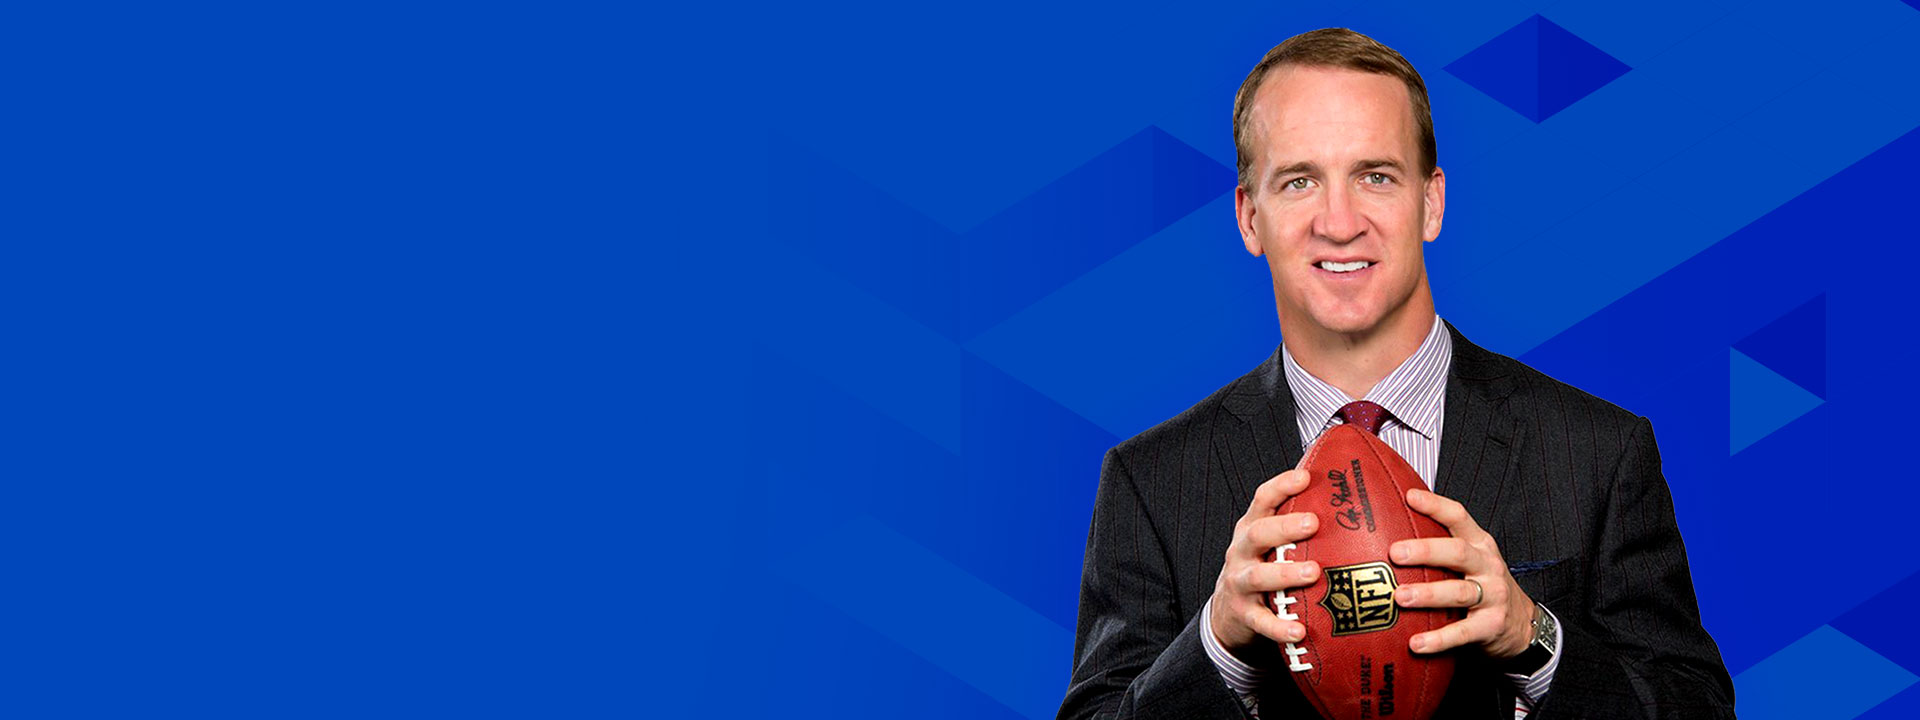 Peyton Manning as keynote speaker for Groundbreak